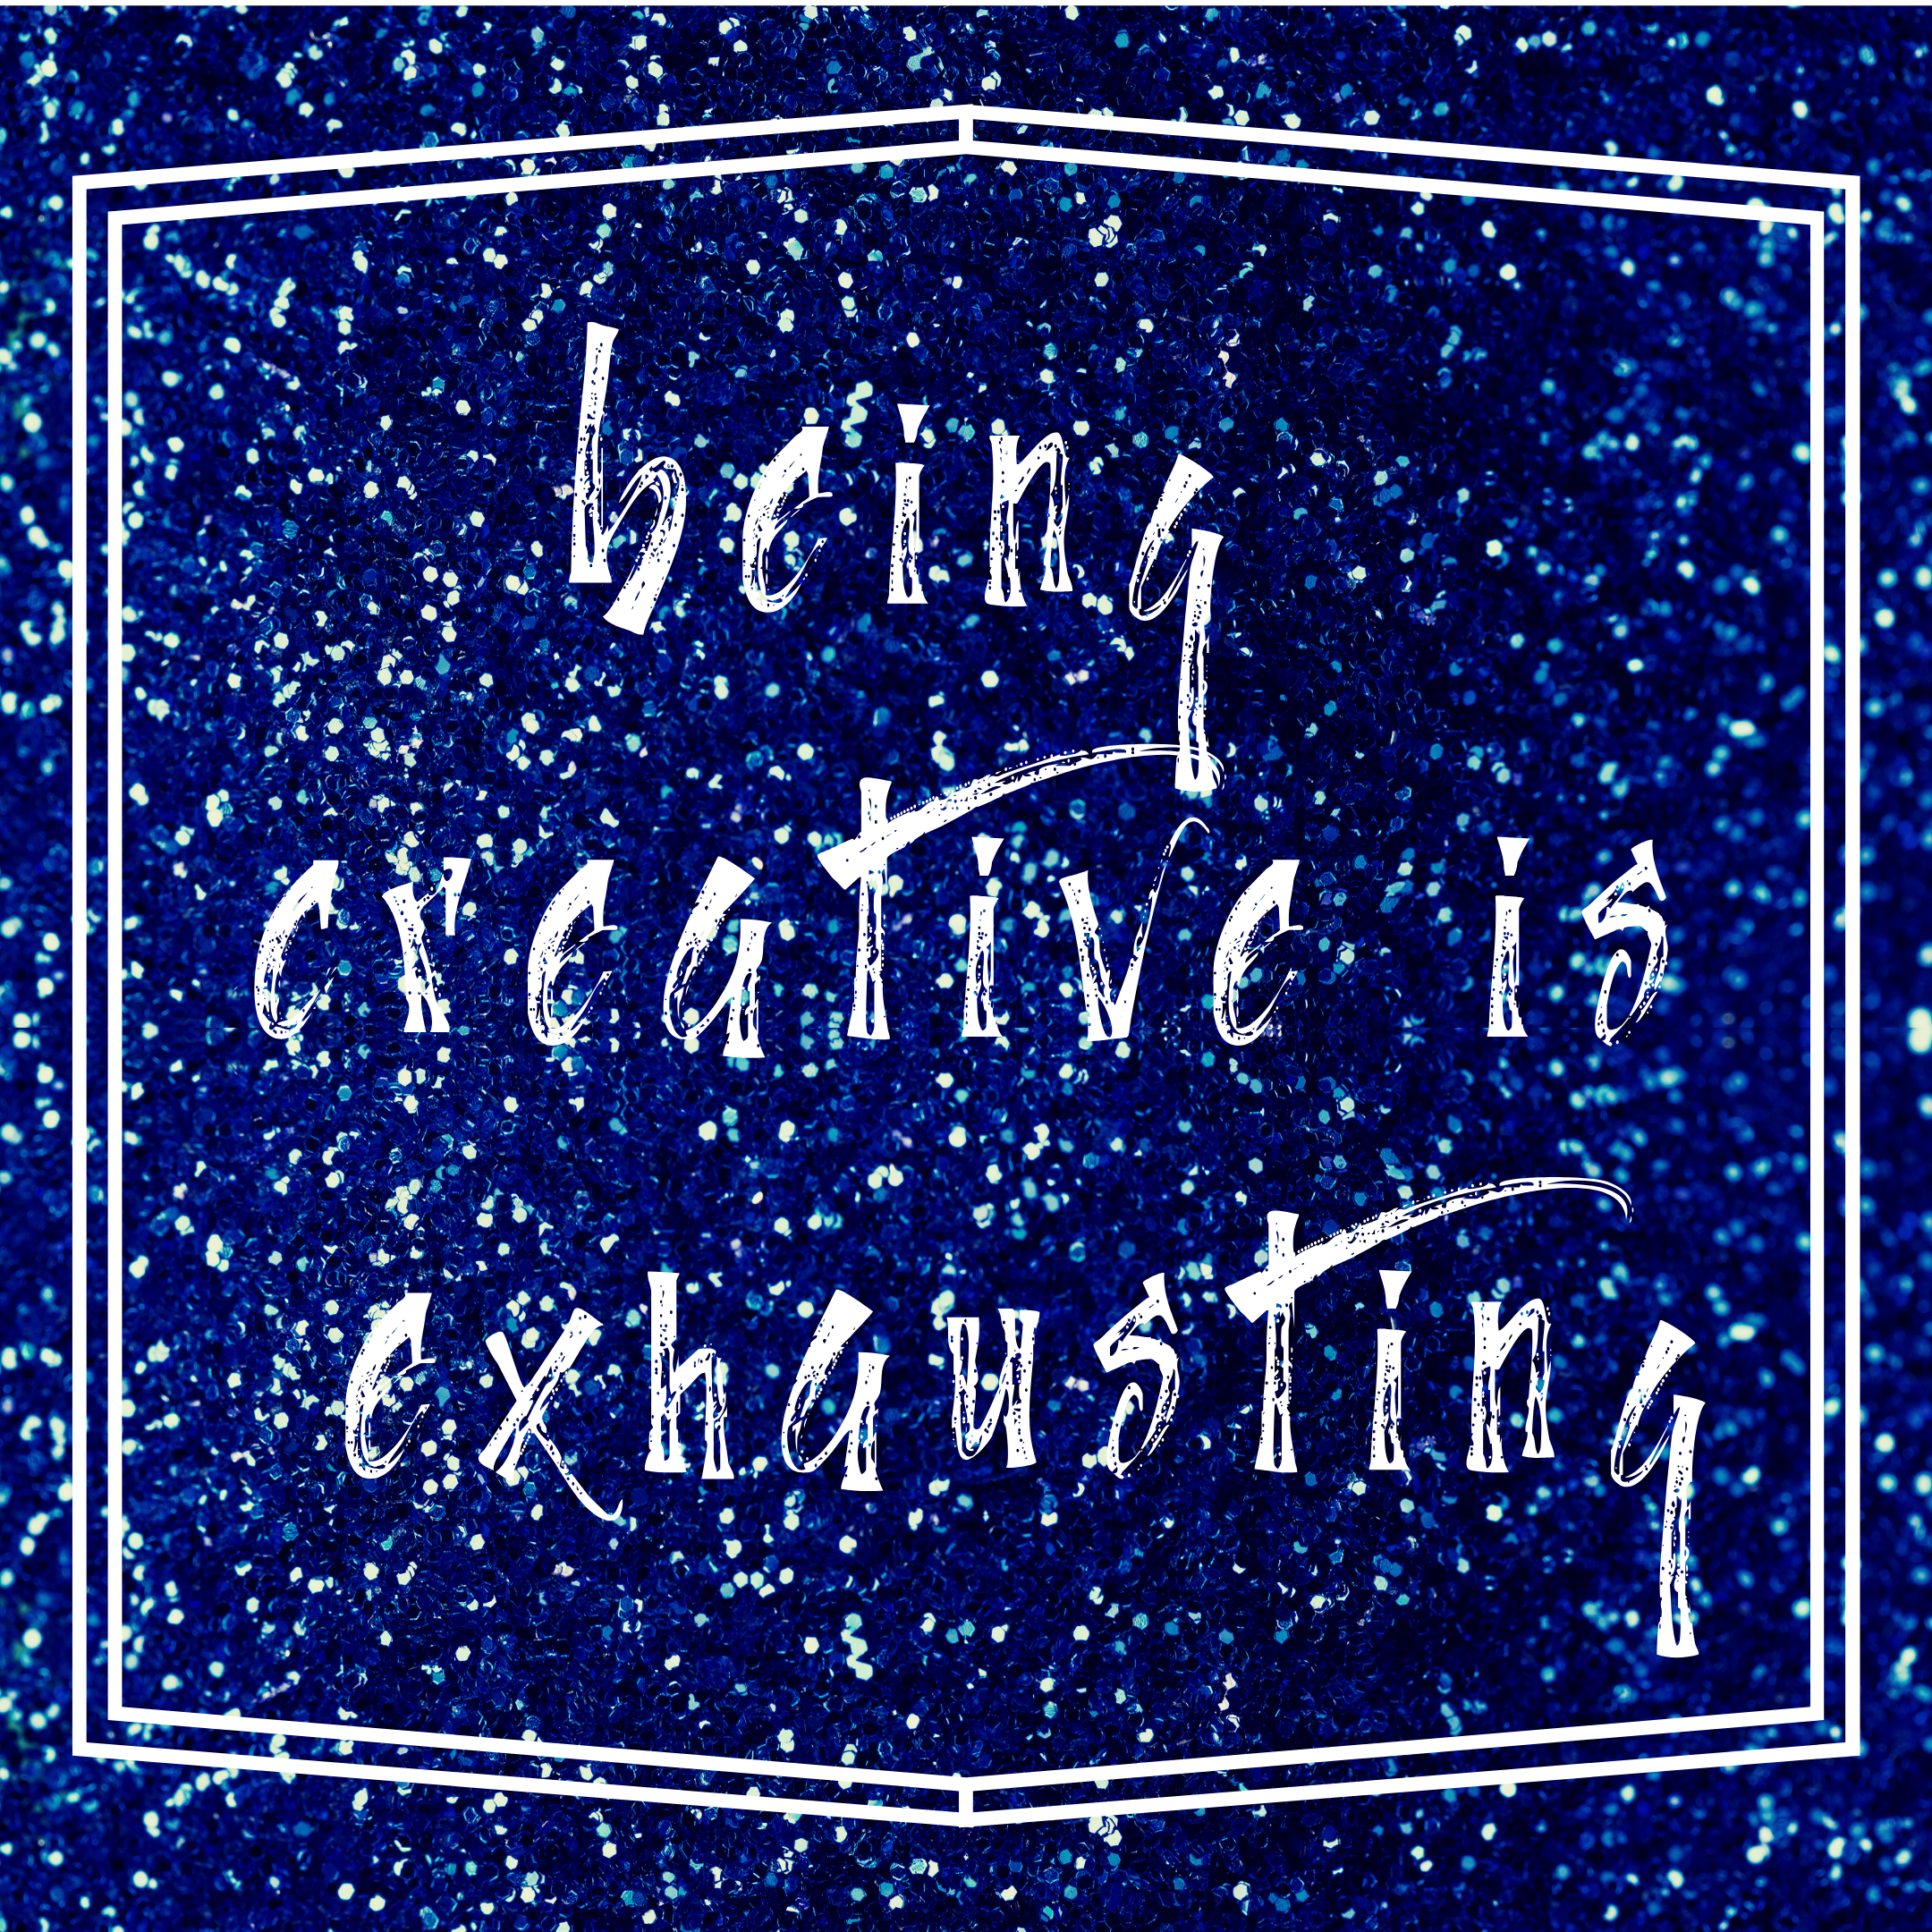 Being creative is exhausting.